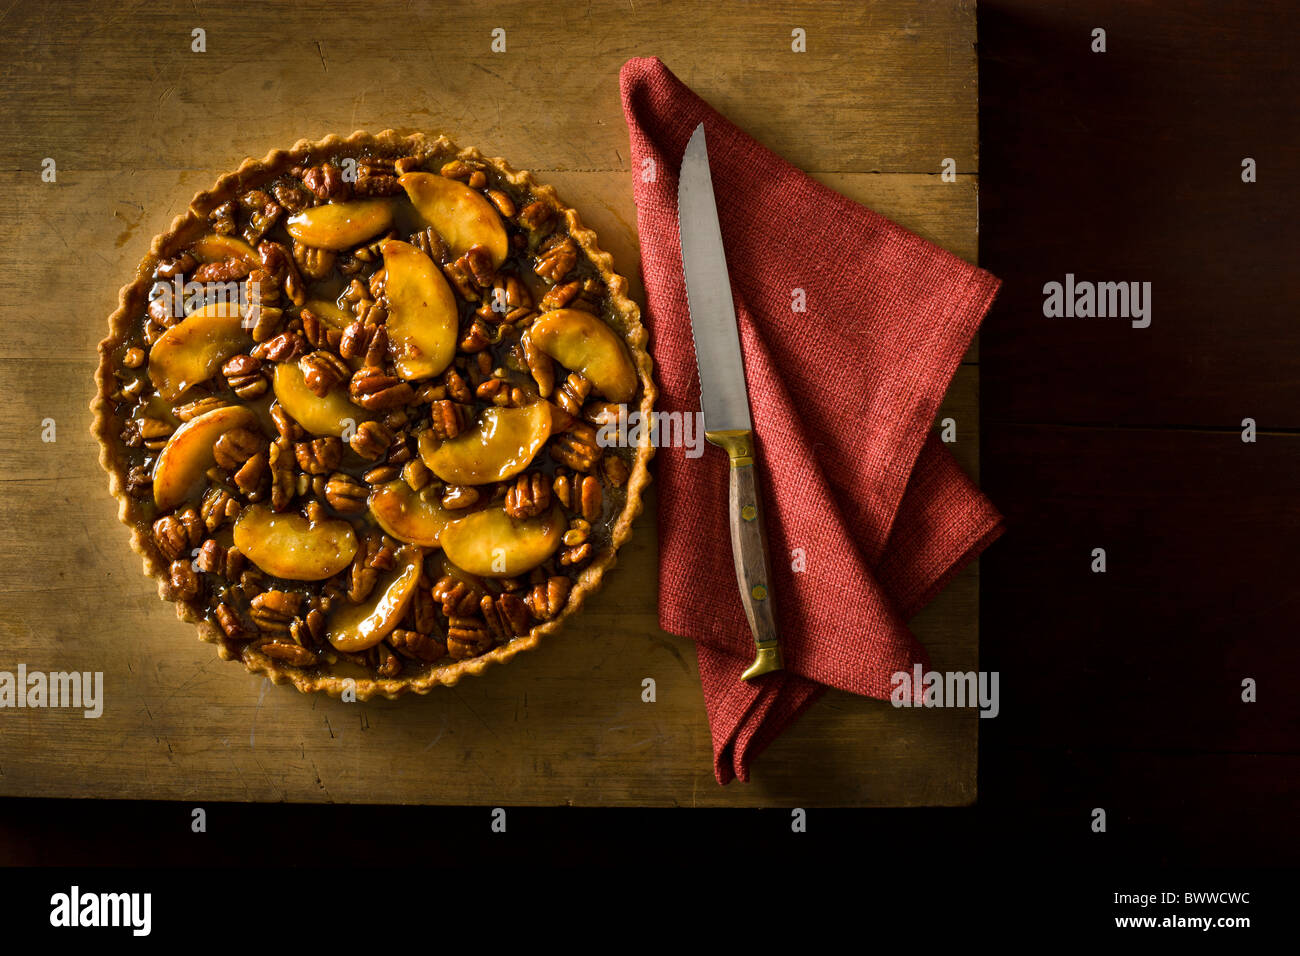 Tarte aux pacanes Apple Photo Stock